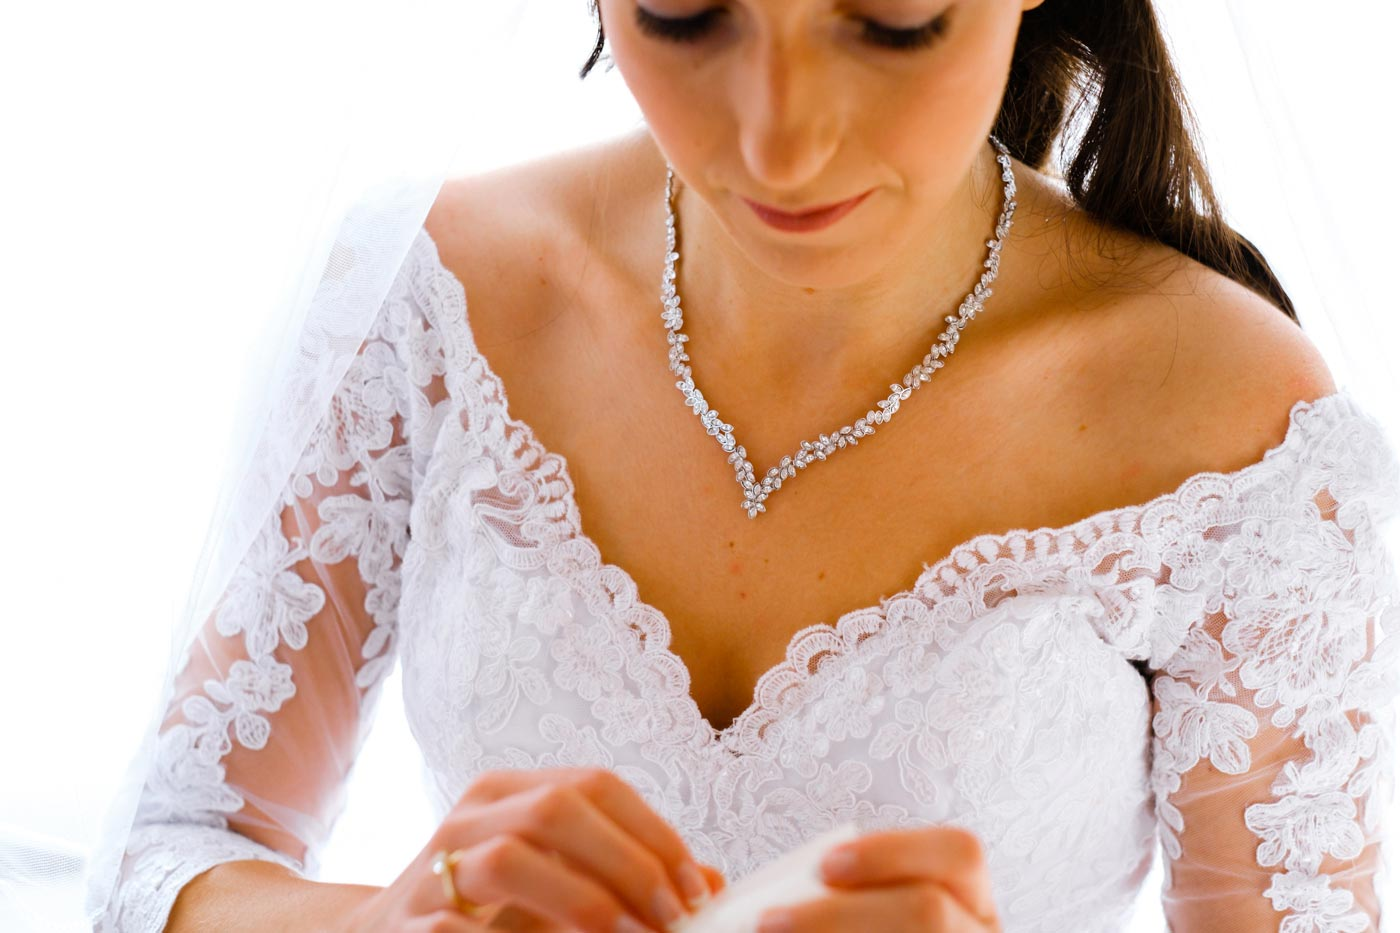 Close-up of bride while getting ready